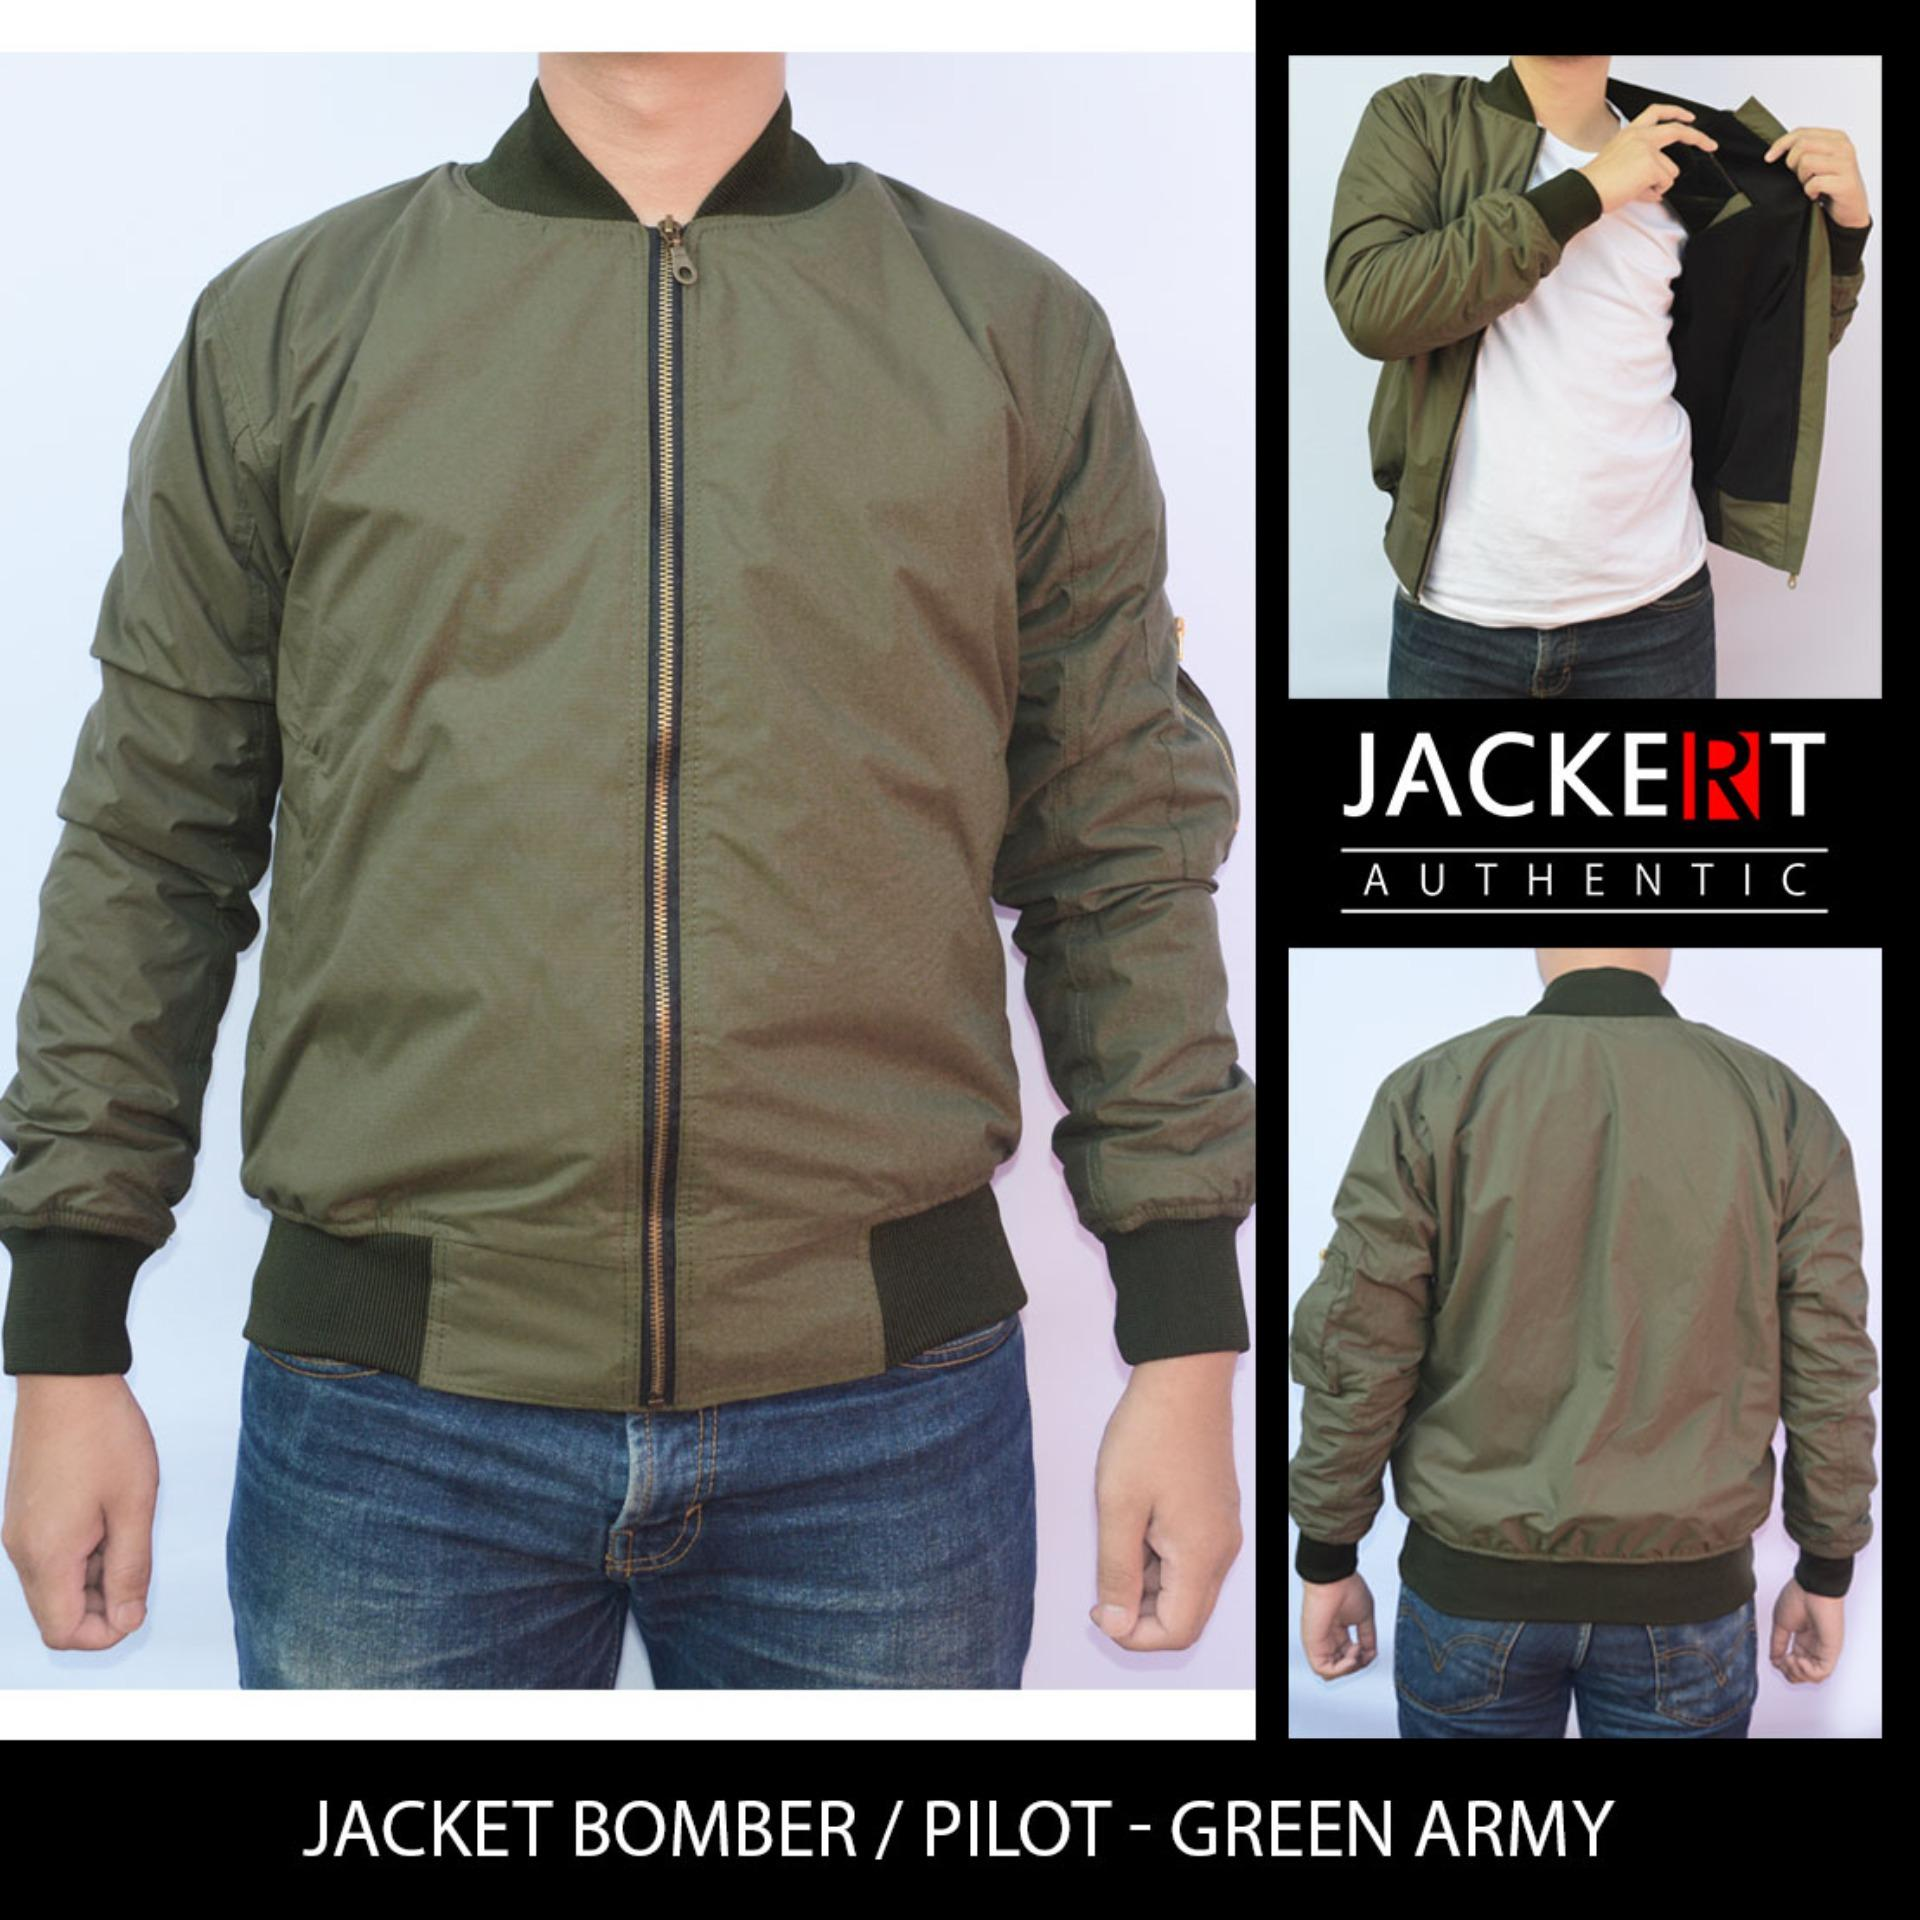 Jaket Pilot / Bomber Premium Tahan angin & Anti Air Model Slim Fit